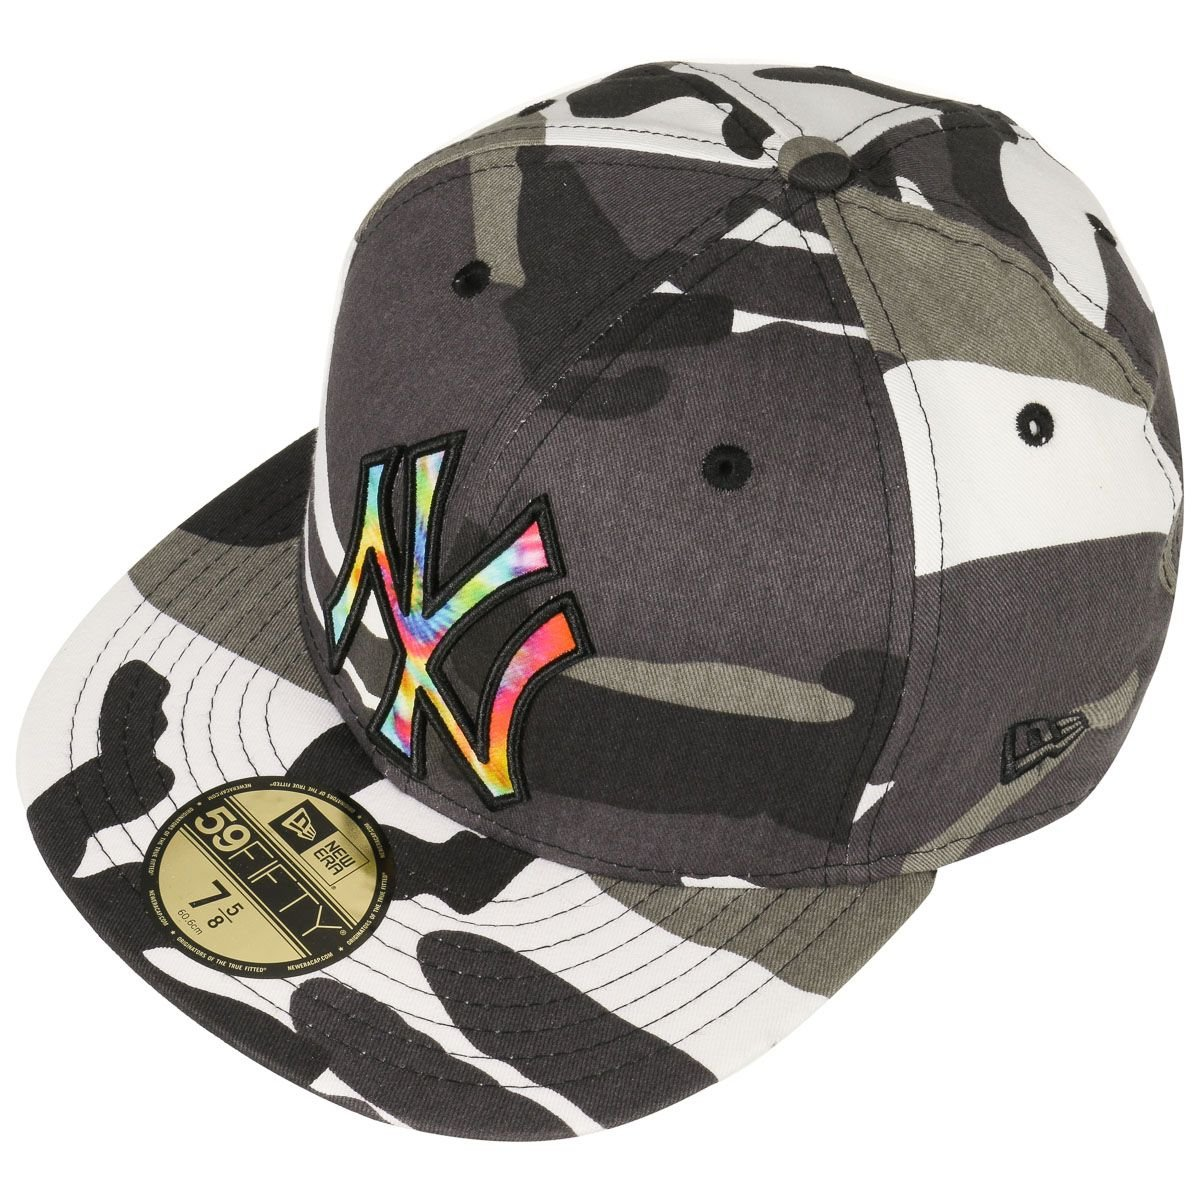 4b26a845301 59FIFTY Camo Colour Swirl Cap NEW ERA caps fitted cap (62 cm - grey)   Amazon.co.uk  Clothing